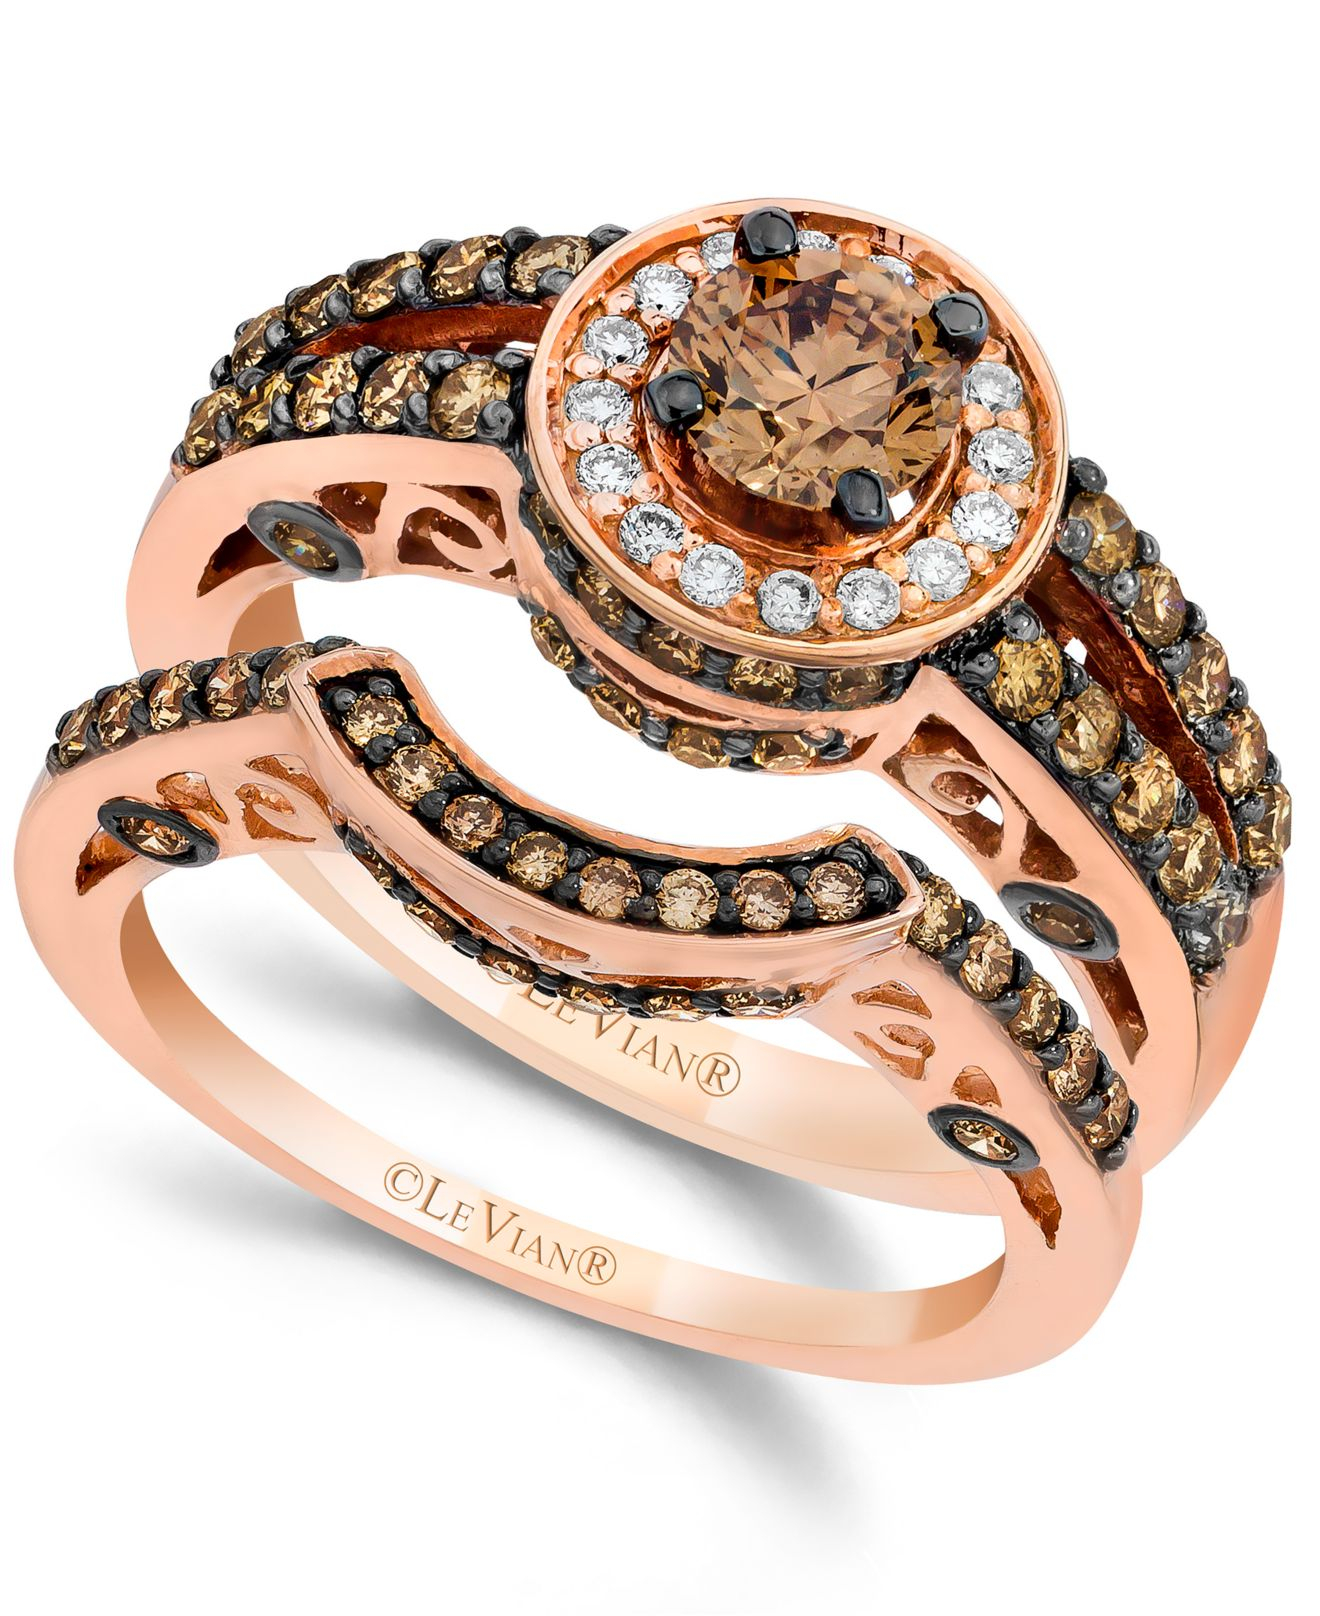 le vian chocolate and white diamond engagement band set in 14k